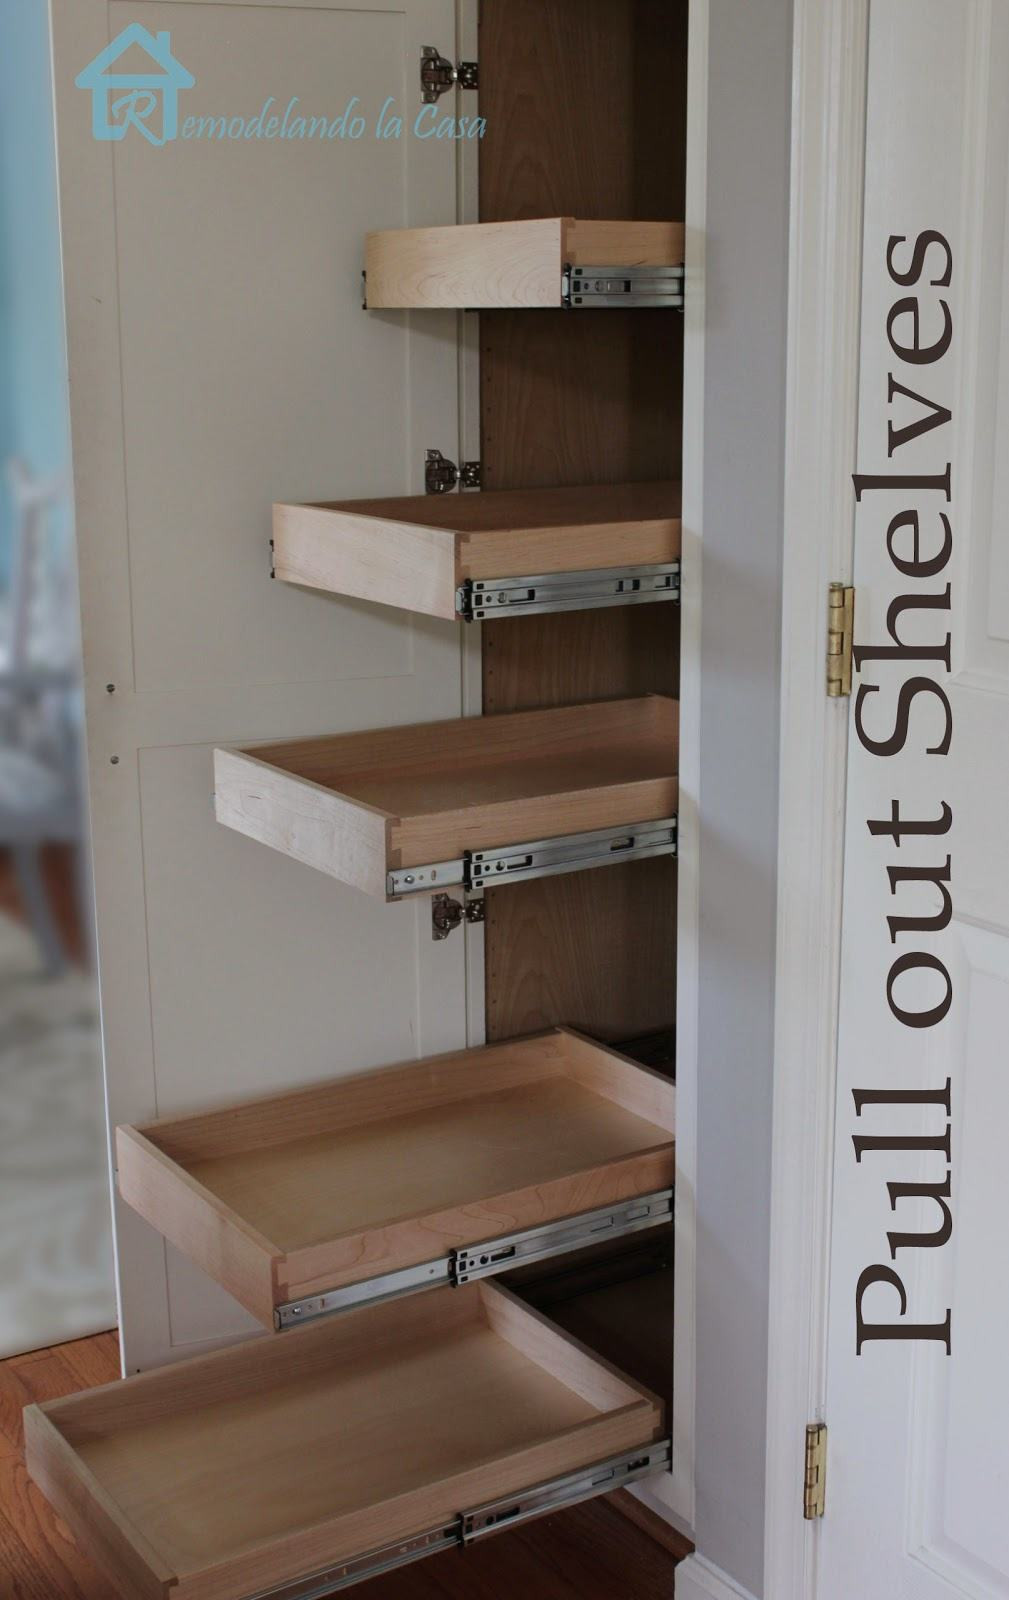 Best ideas about DIY Pull Out Shelves . Save or Pin Cheap Home Improvement Ideas DIY Projects Craft Ideas Now.